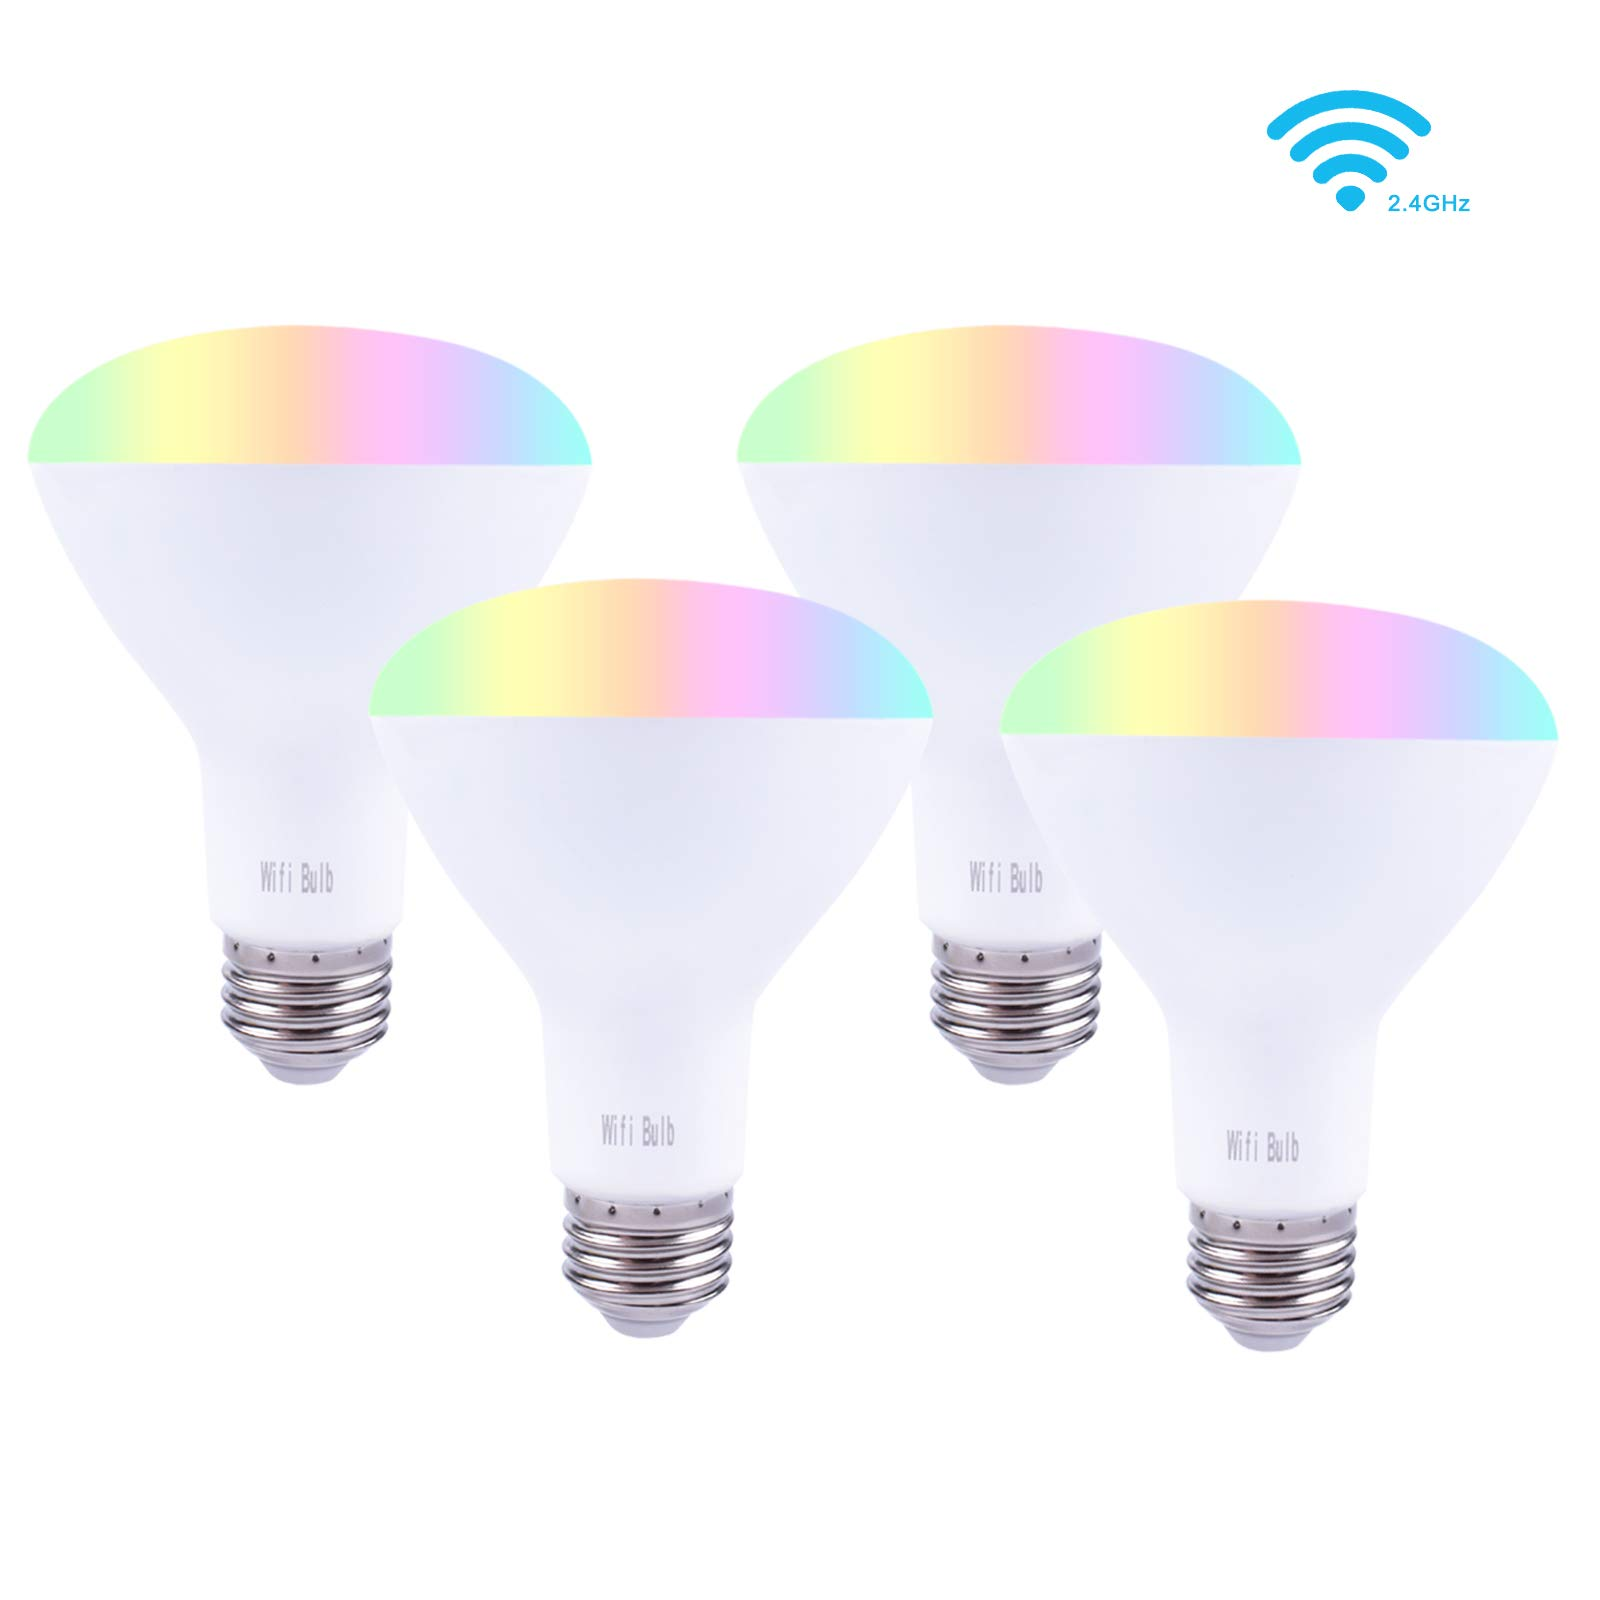 Smalux Br30 Dimmable Smart Bulb Color RGB/Warm White LED Bulb, Voice and Remote APP Control Bulb,Timer Switch Smart Home Lighting Bulb Work with Alexa/Google Home/IFTTT,E26 7W 4 Pack